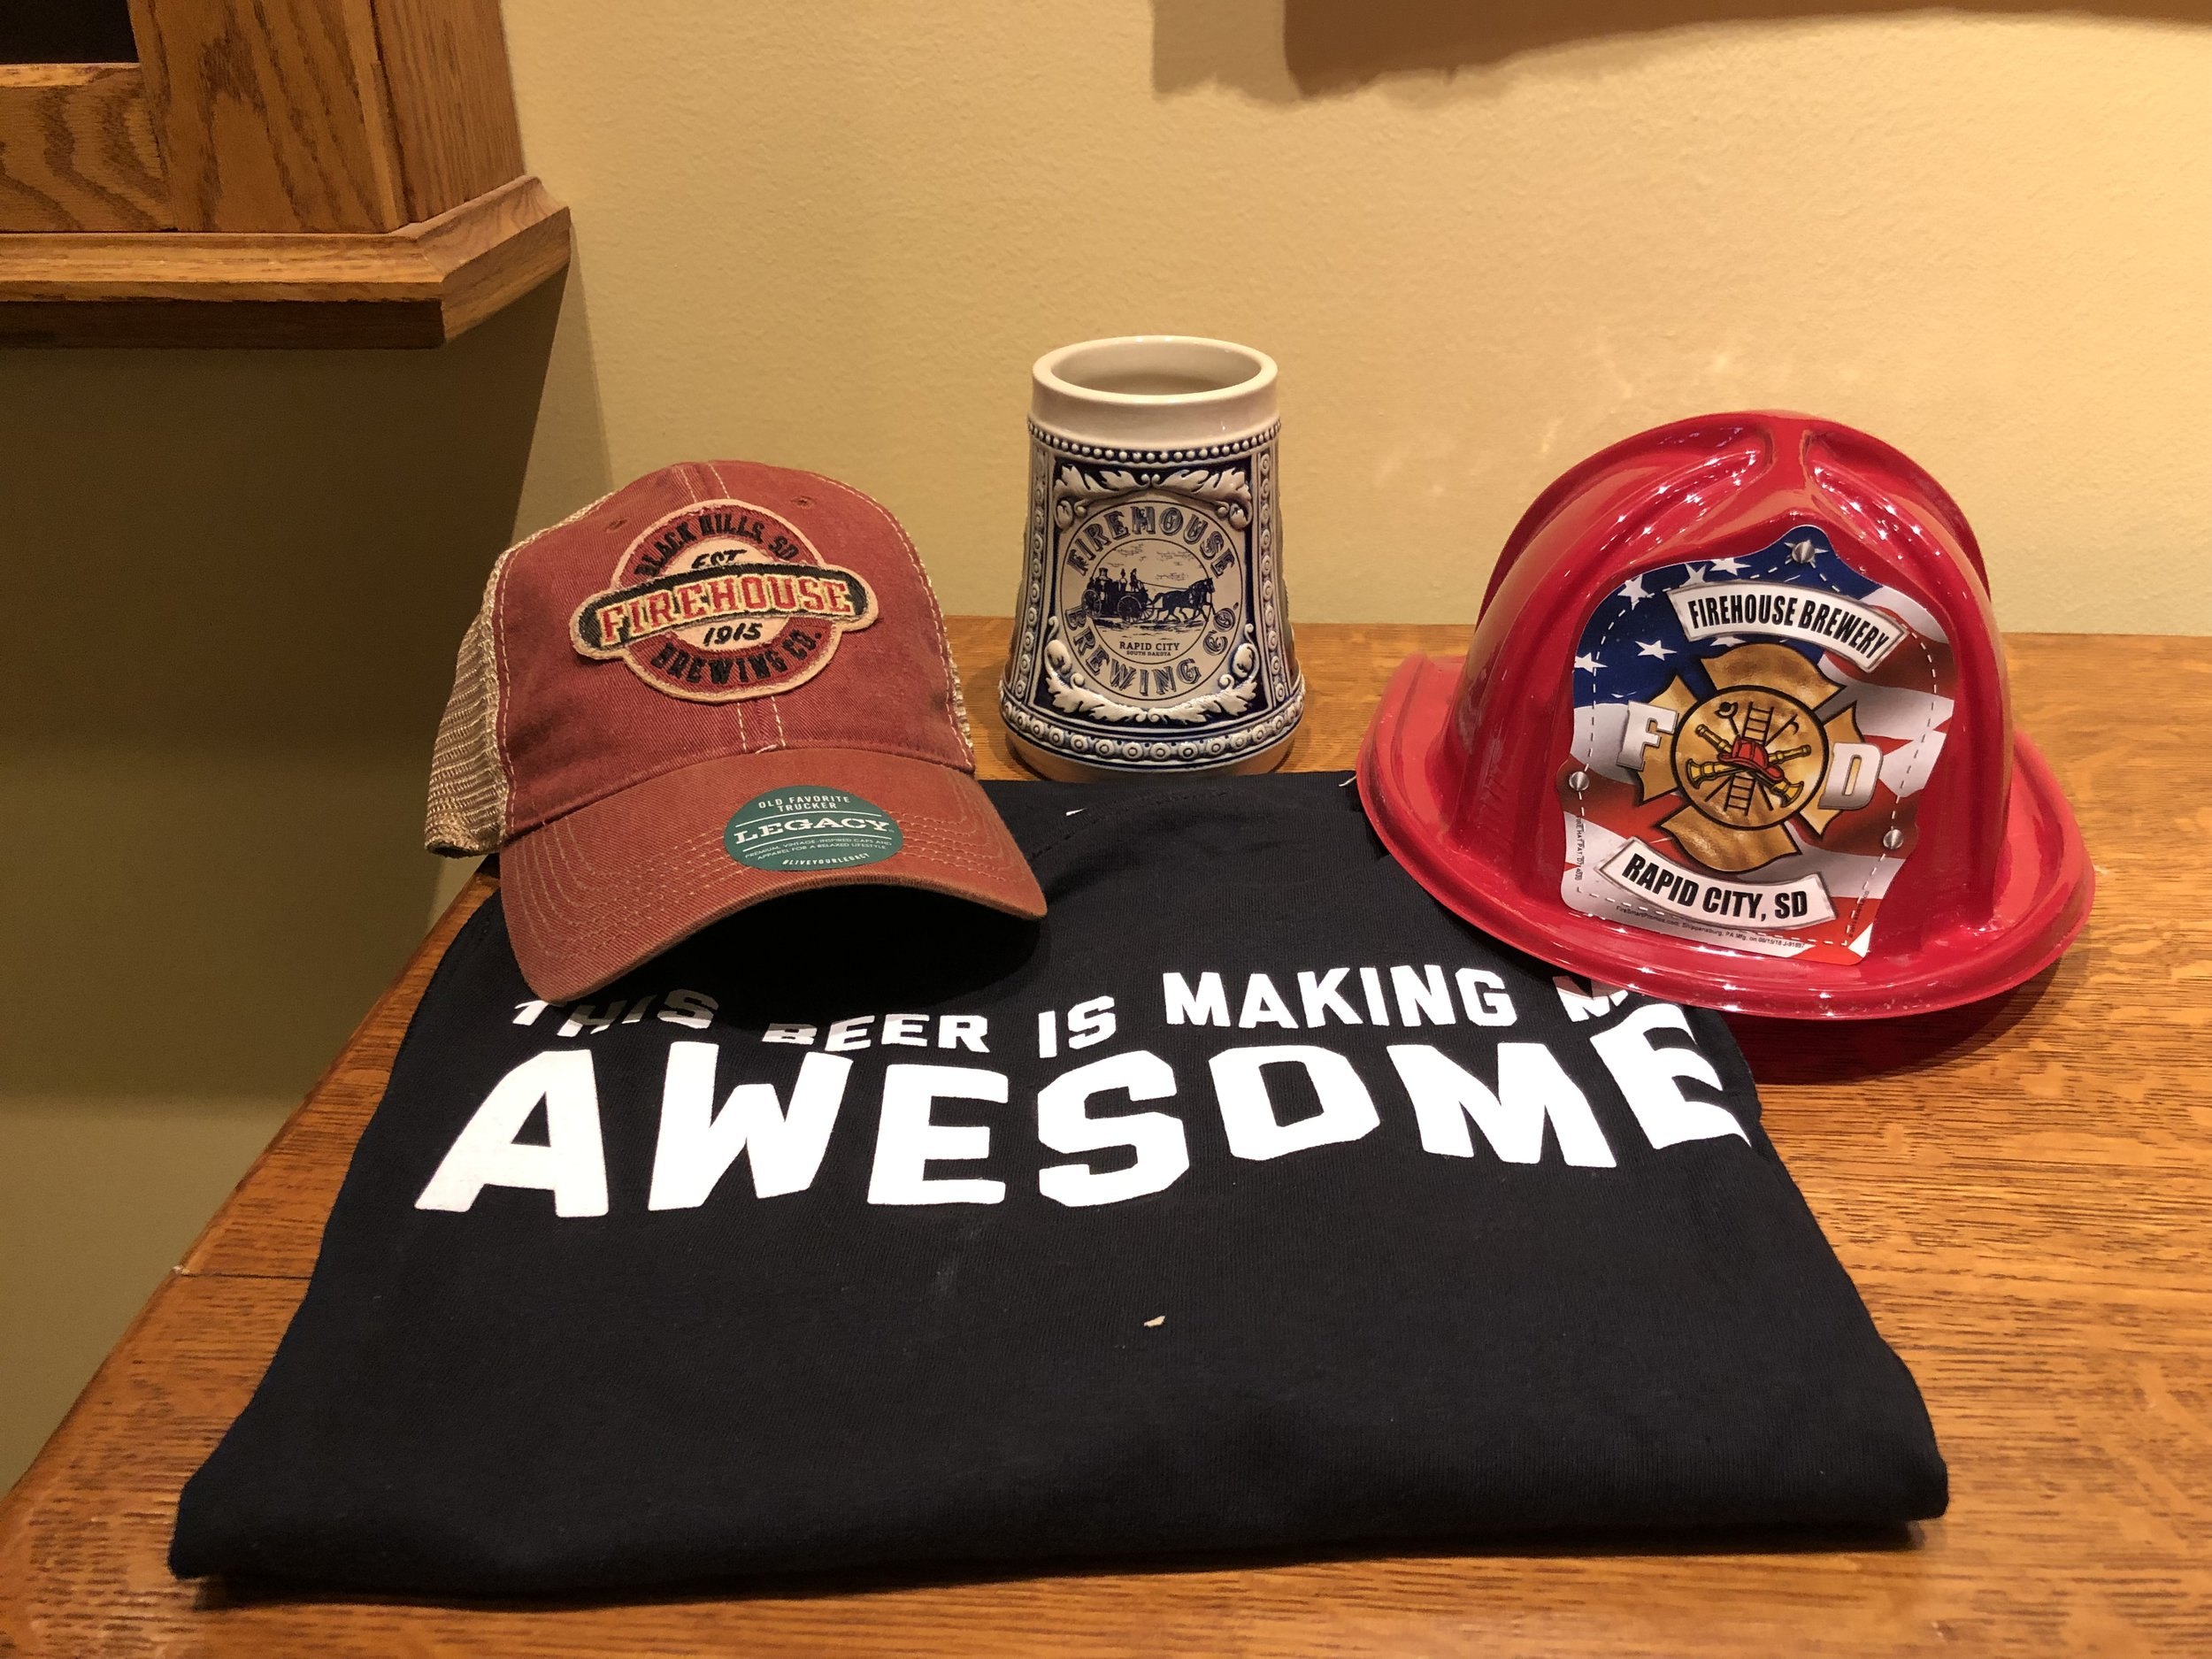 """""""This Beer is Making Me Awesome"""" XL t-shirt, Firehouse Brewery cap and tankard and Firehouse Brewery kids firemen hat from Rapid City, South Dakota"""